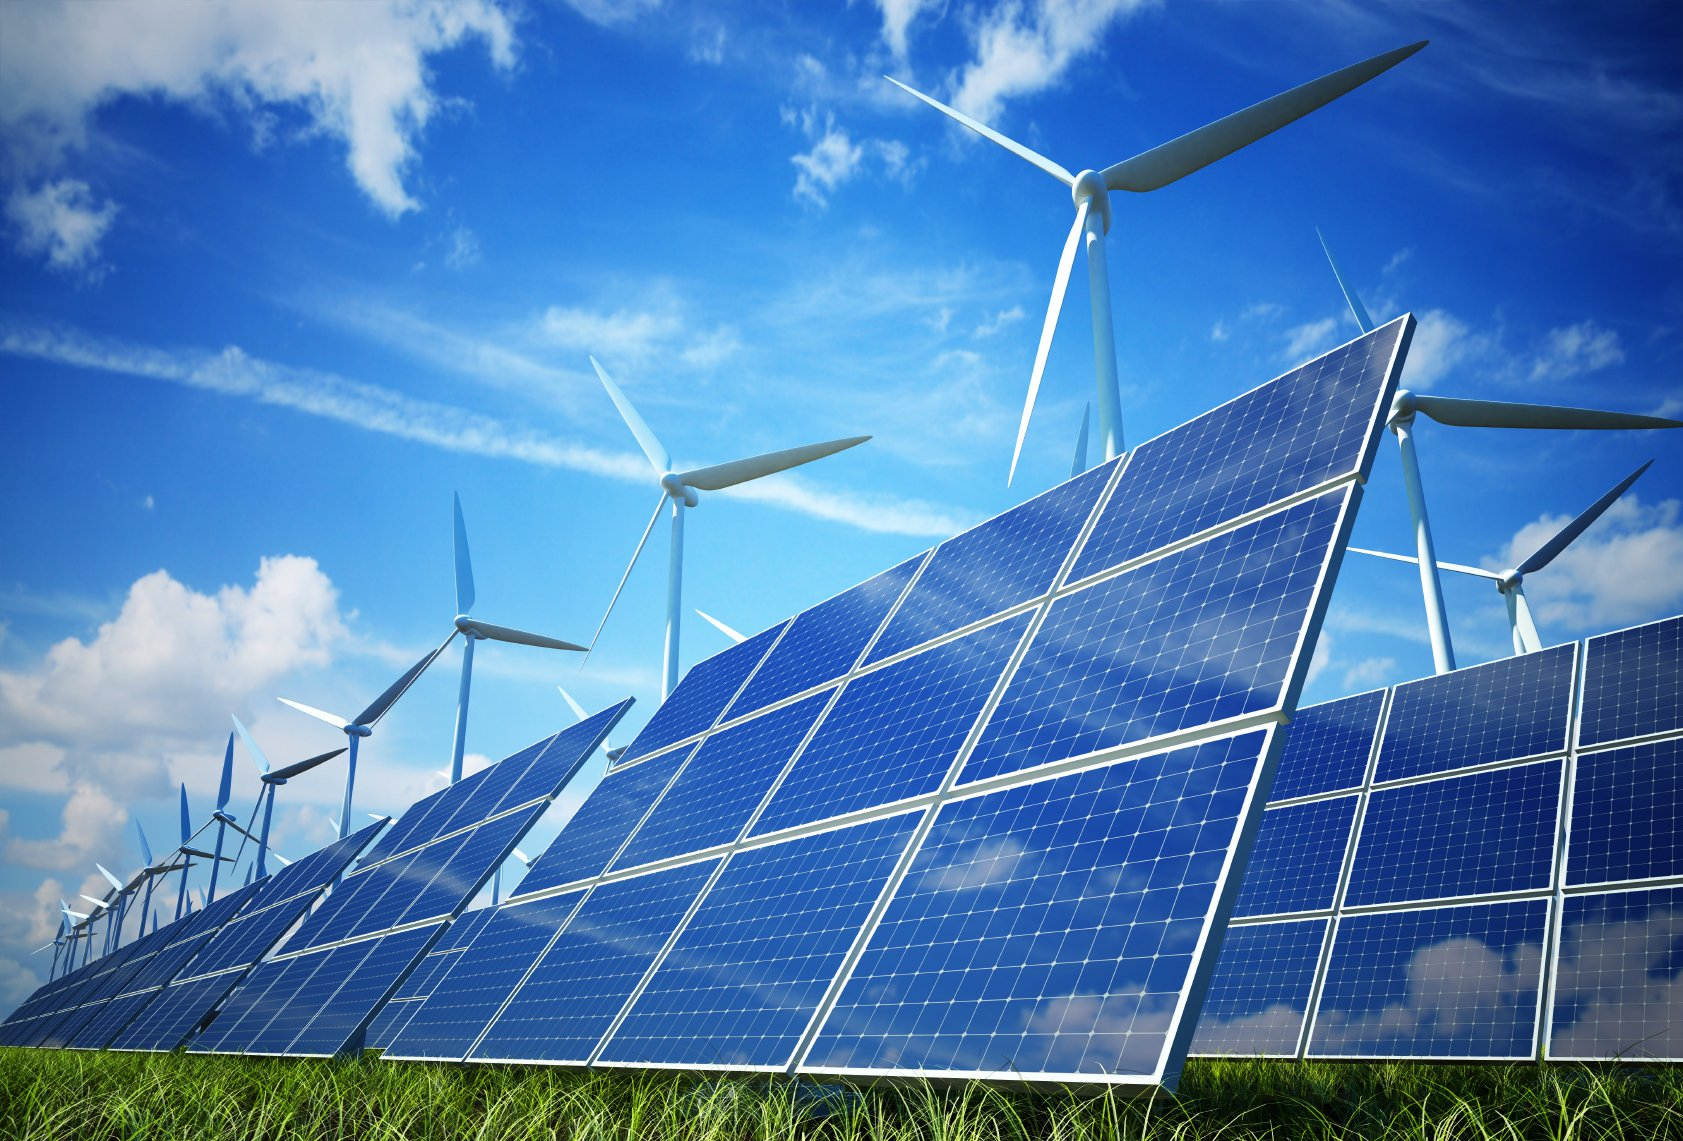 Iran could fully adopt renewable energy systems